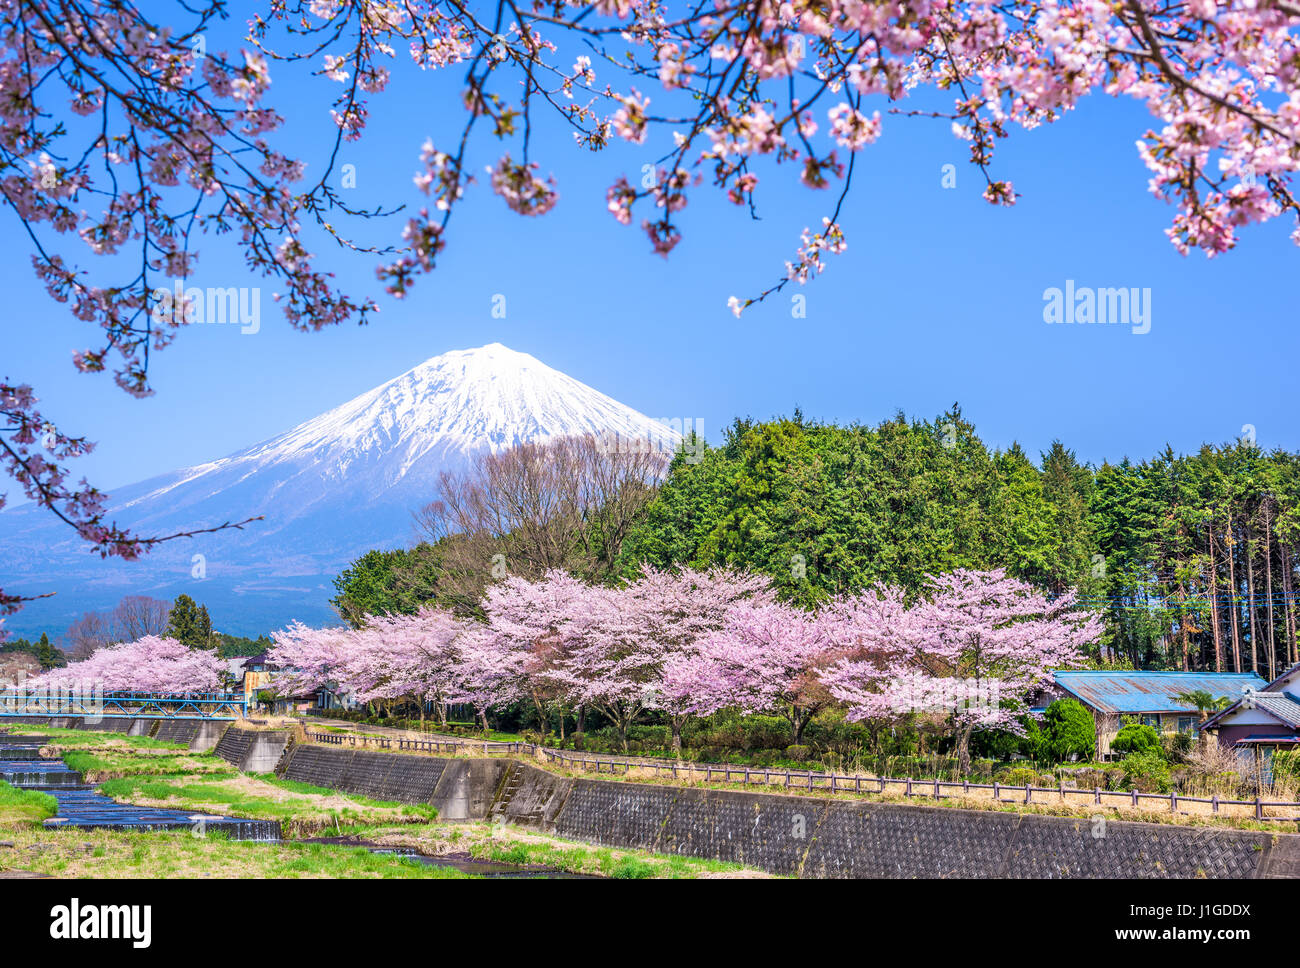 Shizuoka, Japan at Mt. Fuji in spring. - Stock Image